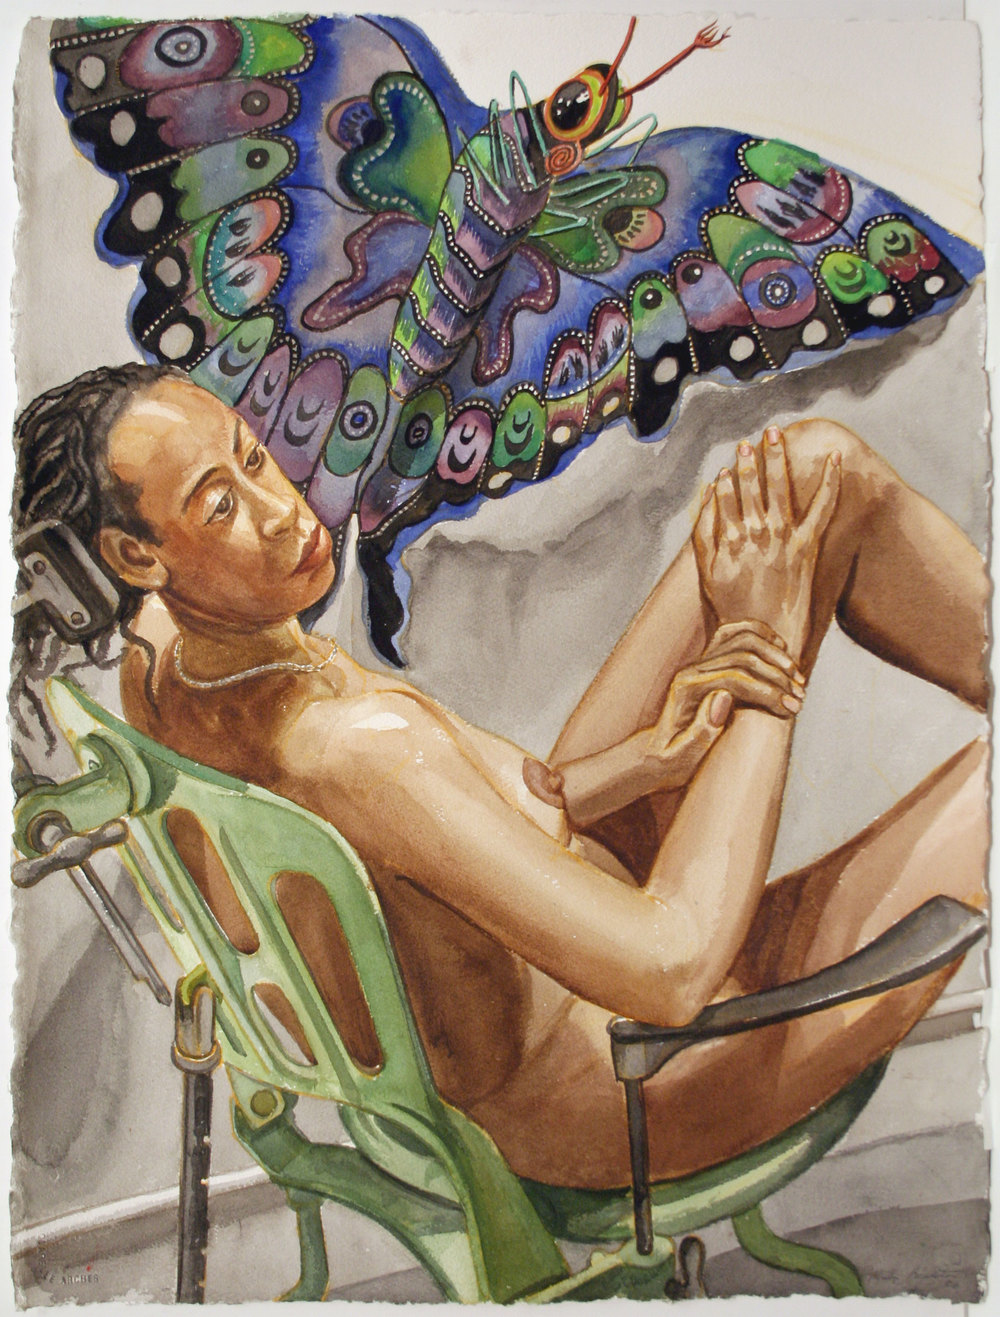 STUDY FOR MODEL WITH BUTTERFLY KITE , 2007 Watercolor on paper 30 x 22 1/2 inches